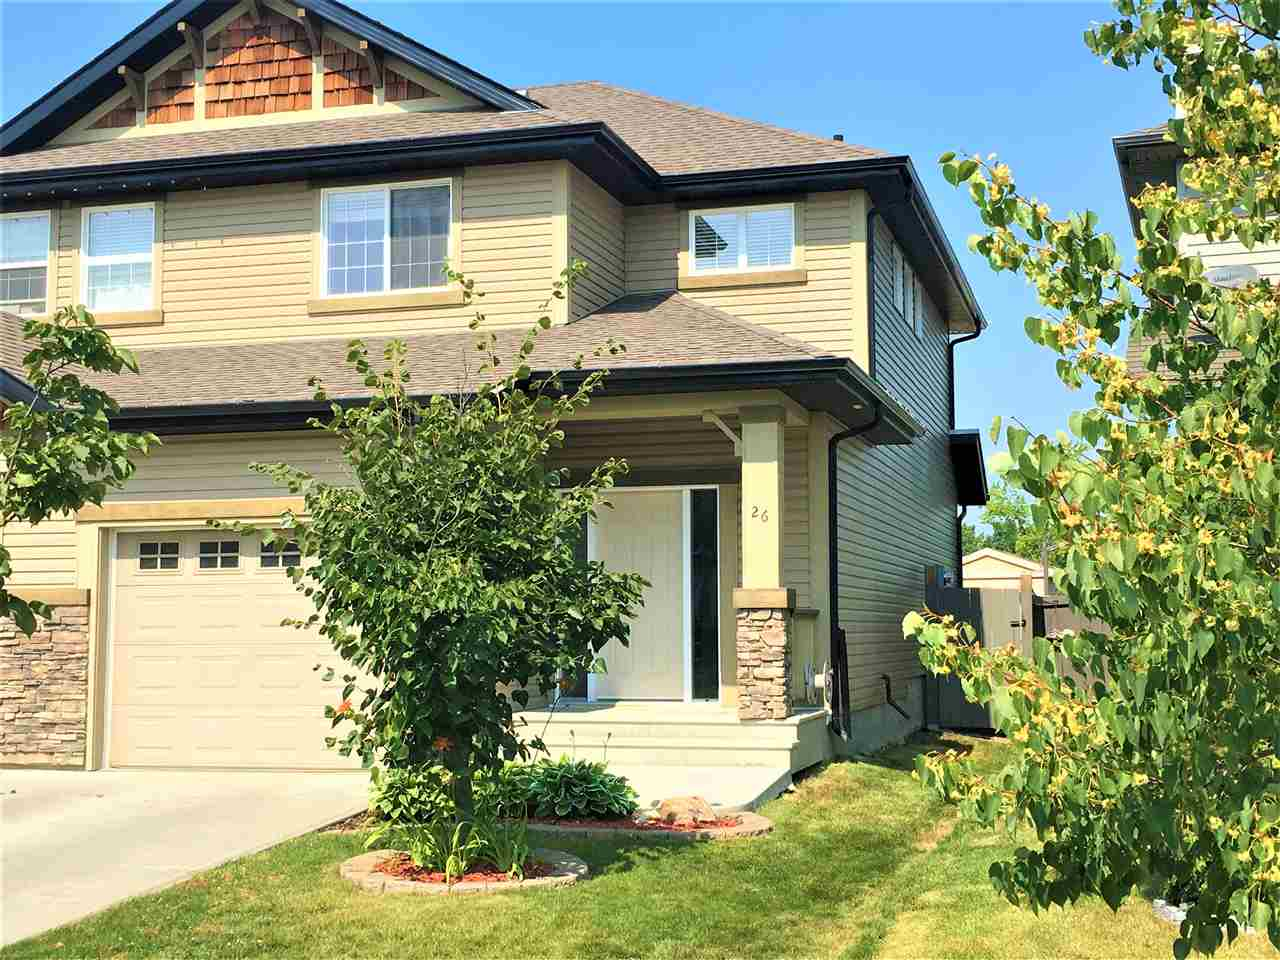 Main Photo: 26 CALVERT: Fort Saskatchewan House Half Duplex for sale : MLS® # E4073956